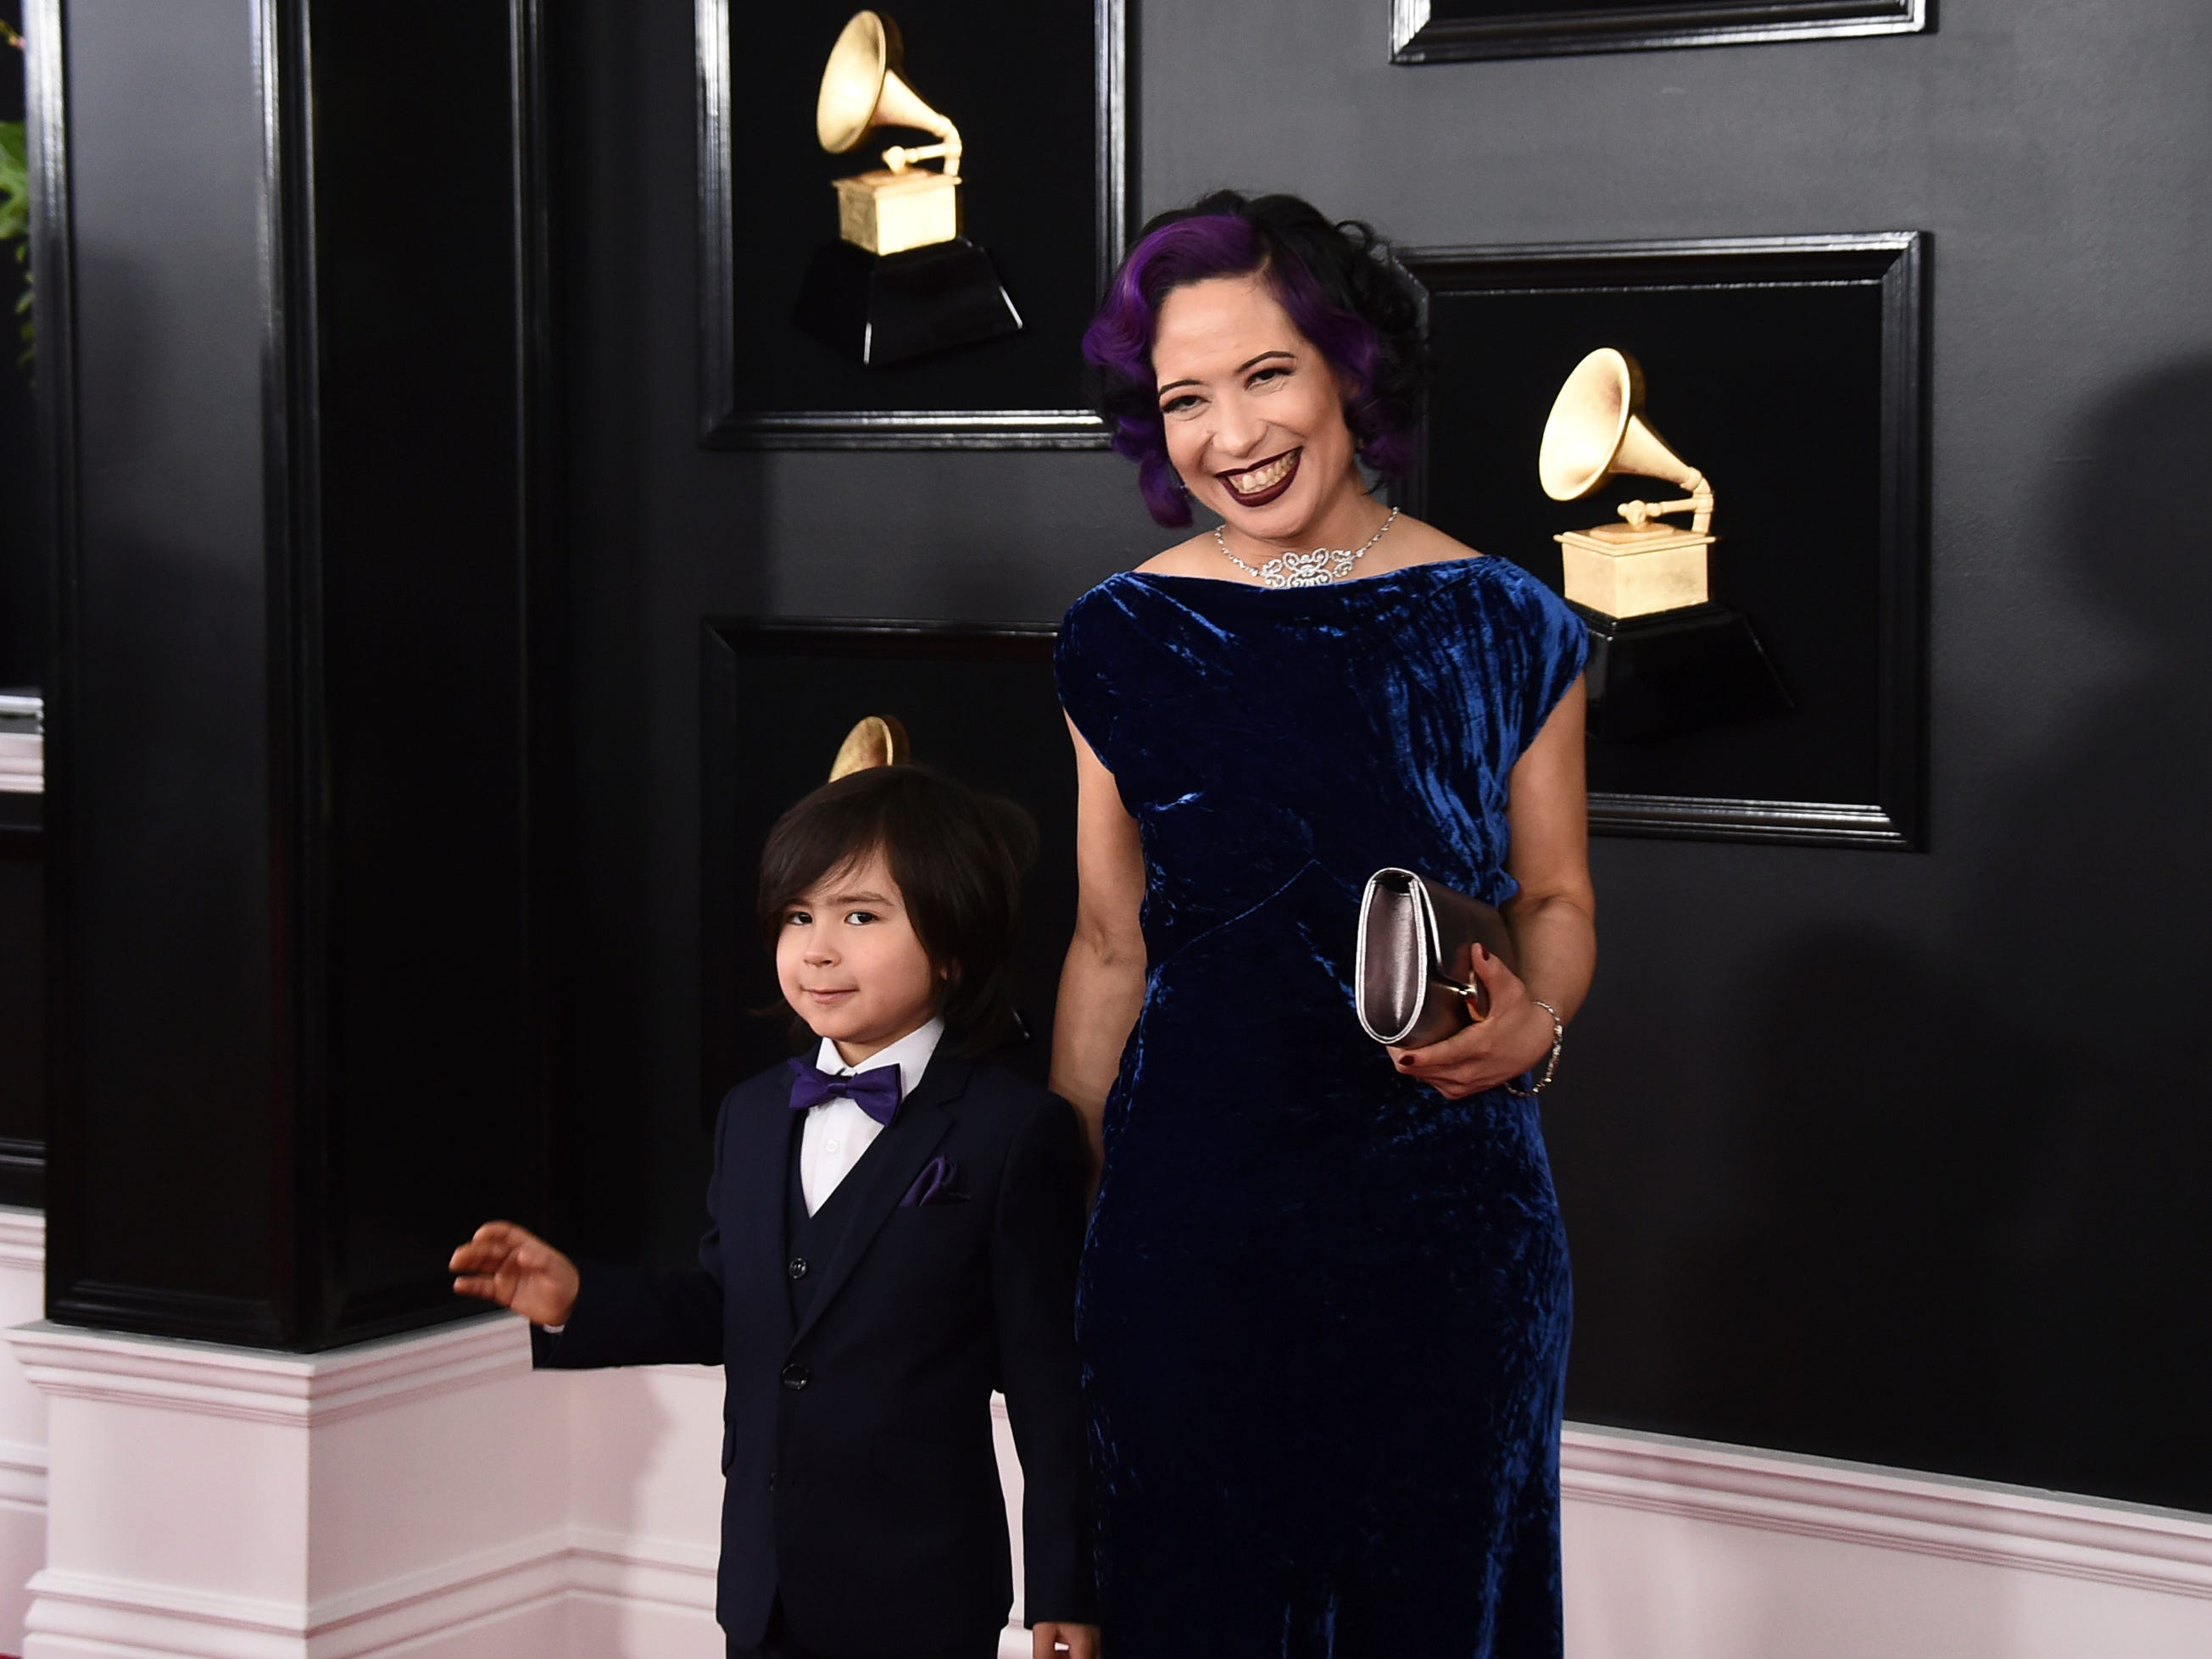 Darius Kalantari, left, and Lucy Kalantari arrive at the 61st annual Grammy Awards at the Staples Center on Sunday, Feb. 10, 2019, in Los Angeles.